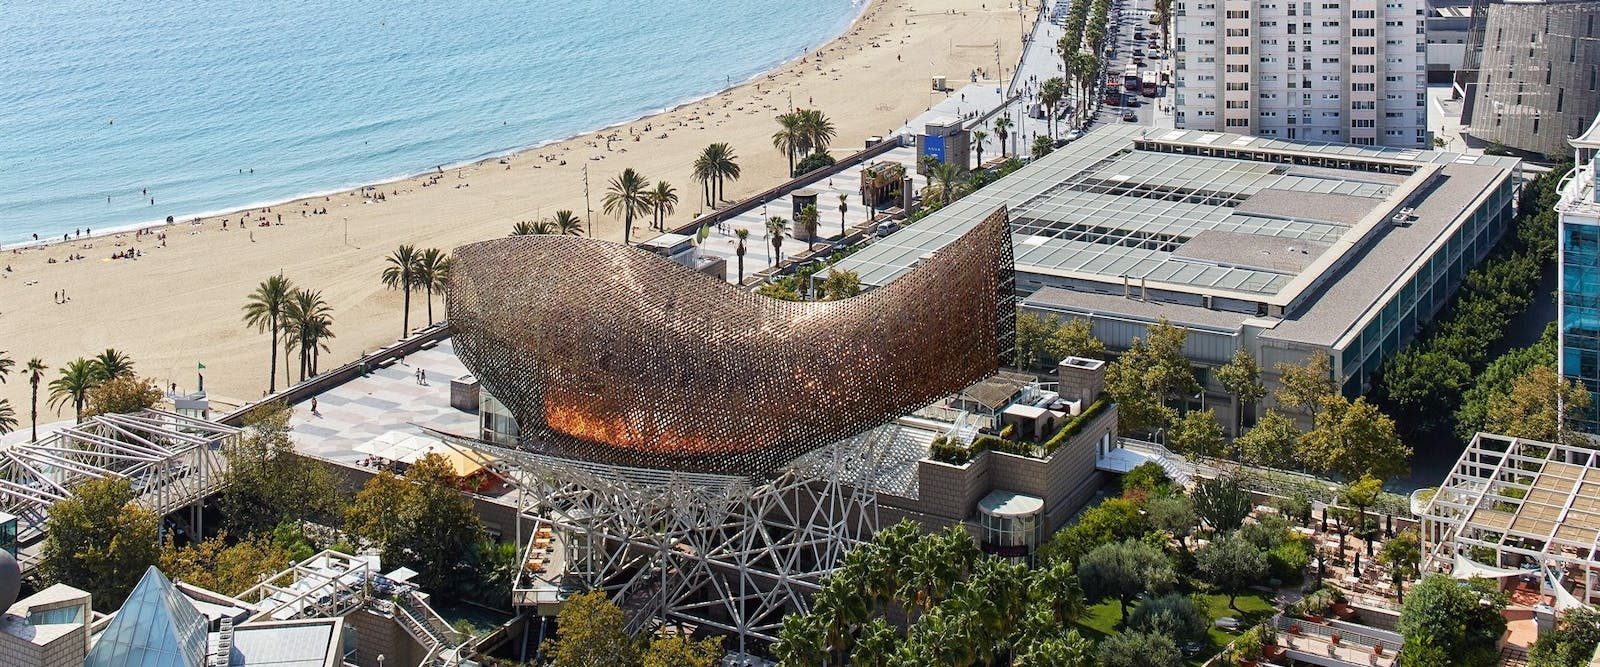 Aerial View at Hotel Arts, Barcelona, Spain